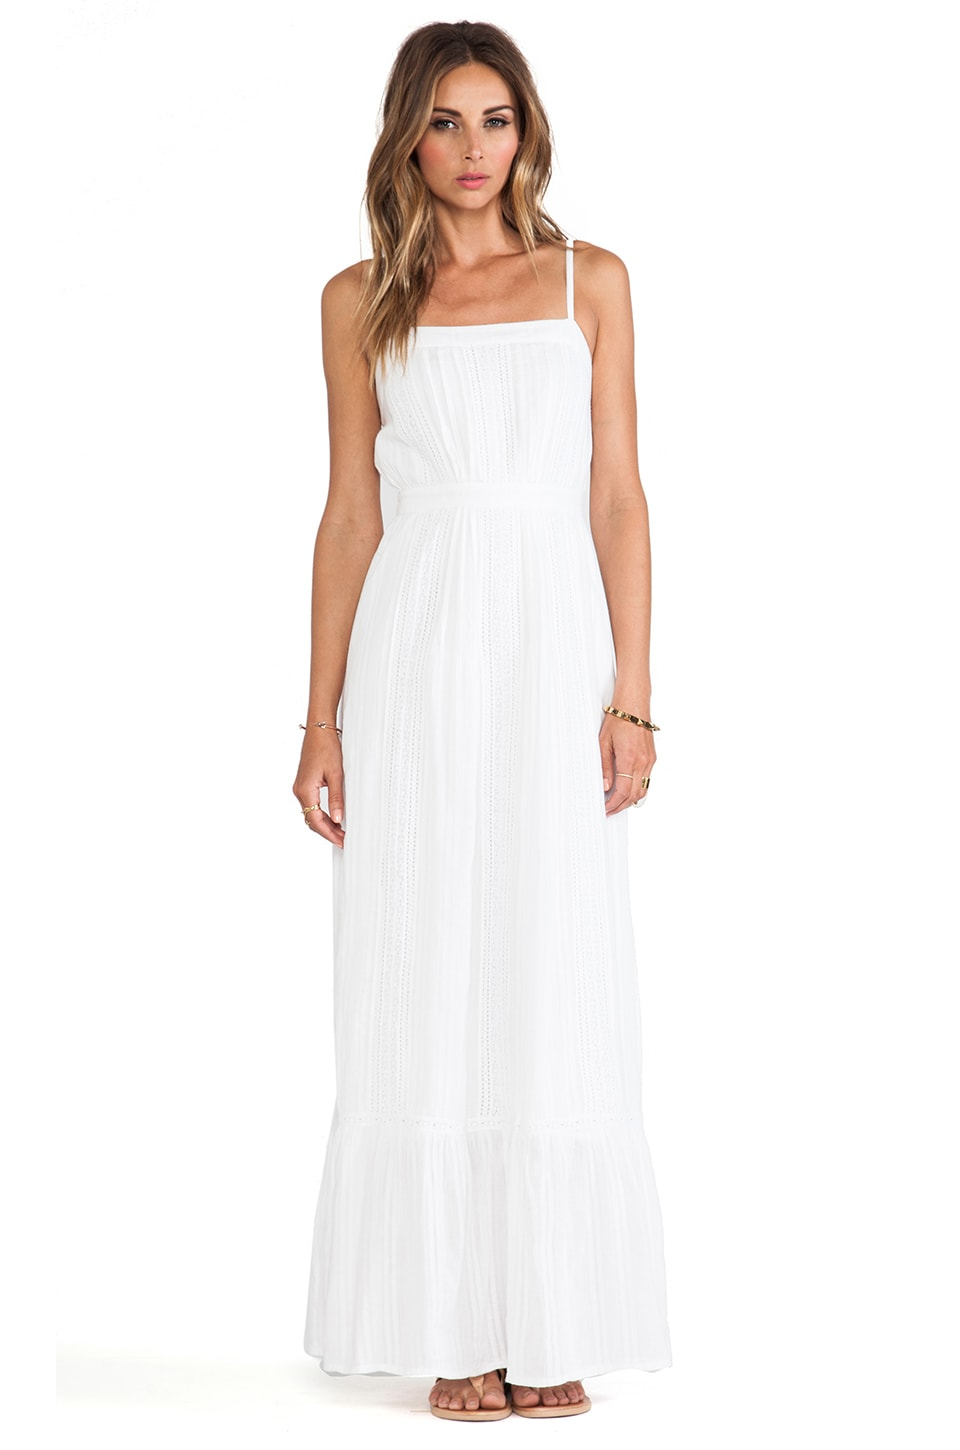 Twelfth Street By Cynthia Vincent Lace Inset Maxi Dress in White